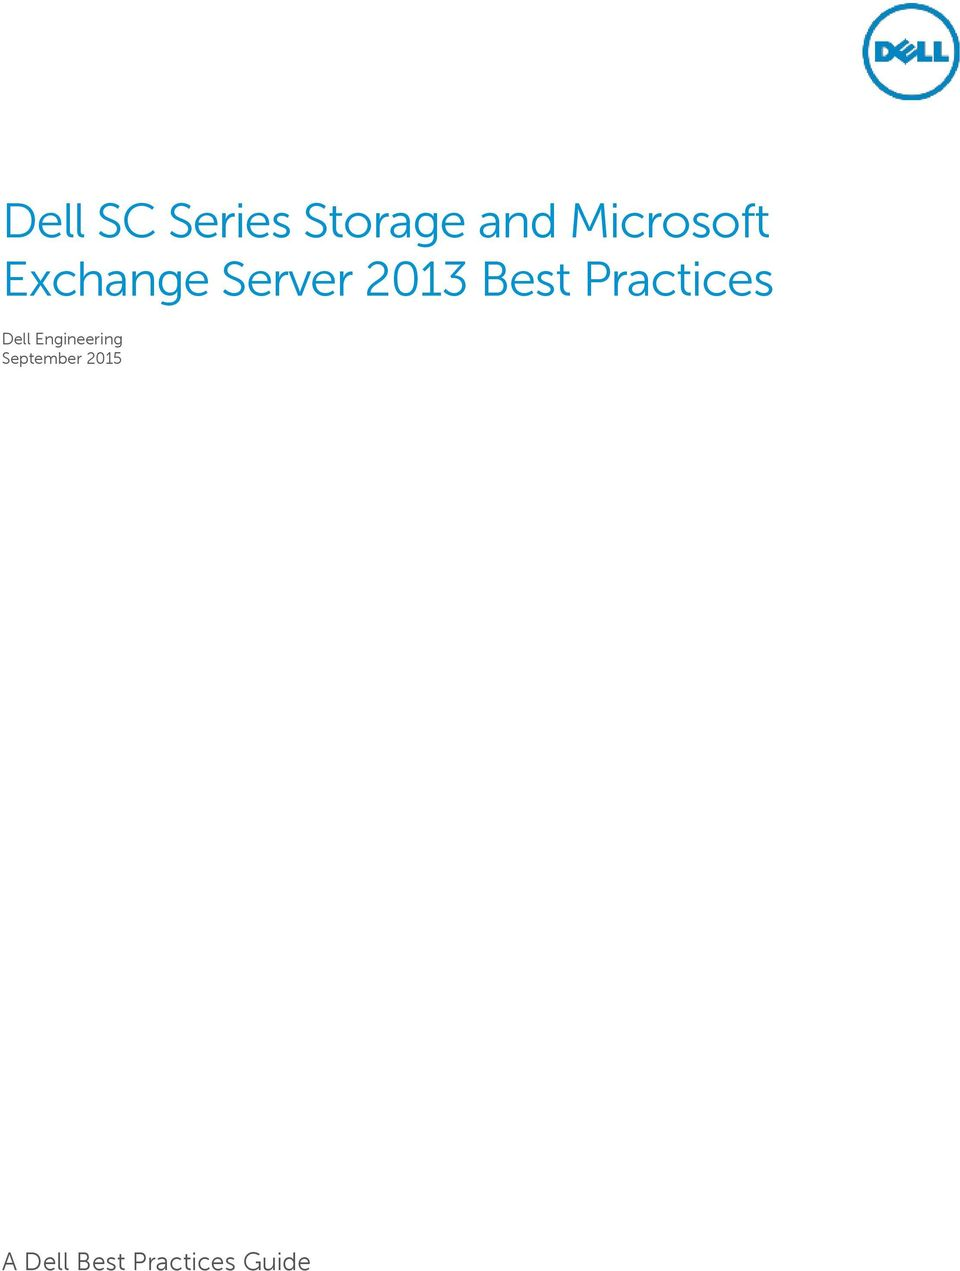 Engineering Documentation Best Practices : Dell sc series storage and microsoft exchange server